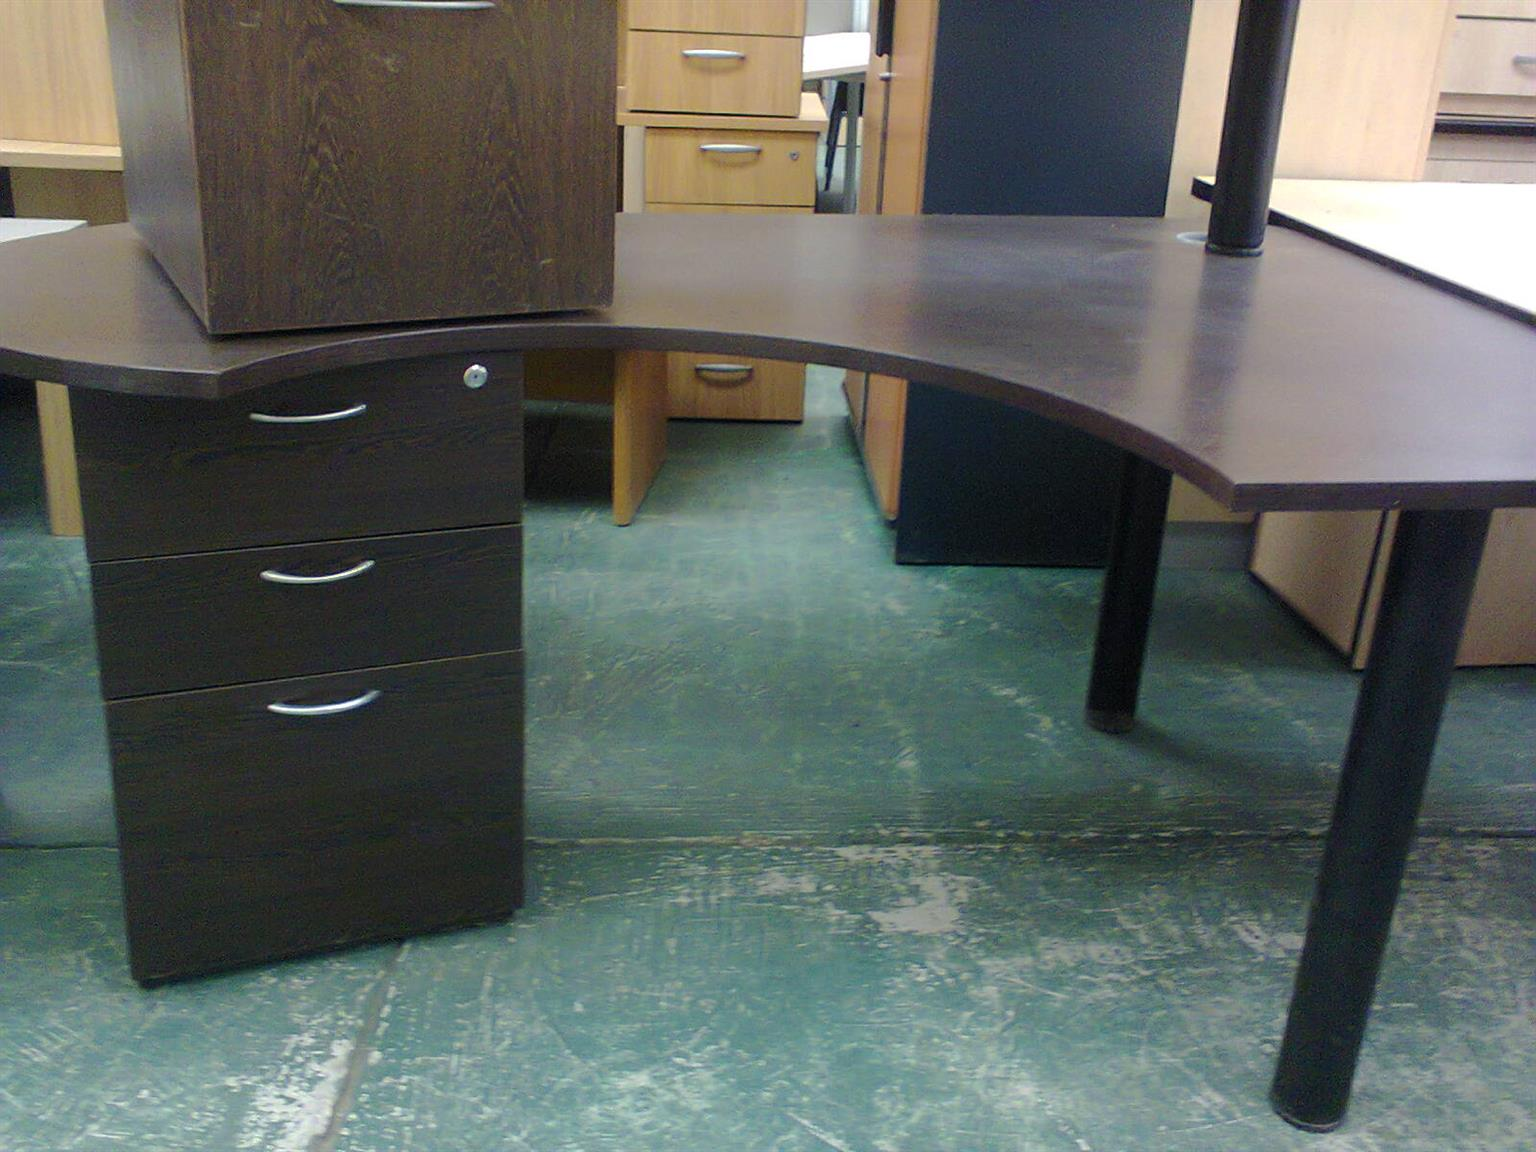 Office Furniture Used High Quality Low Low Prices Junk Mail - Low Desk